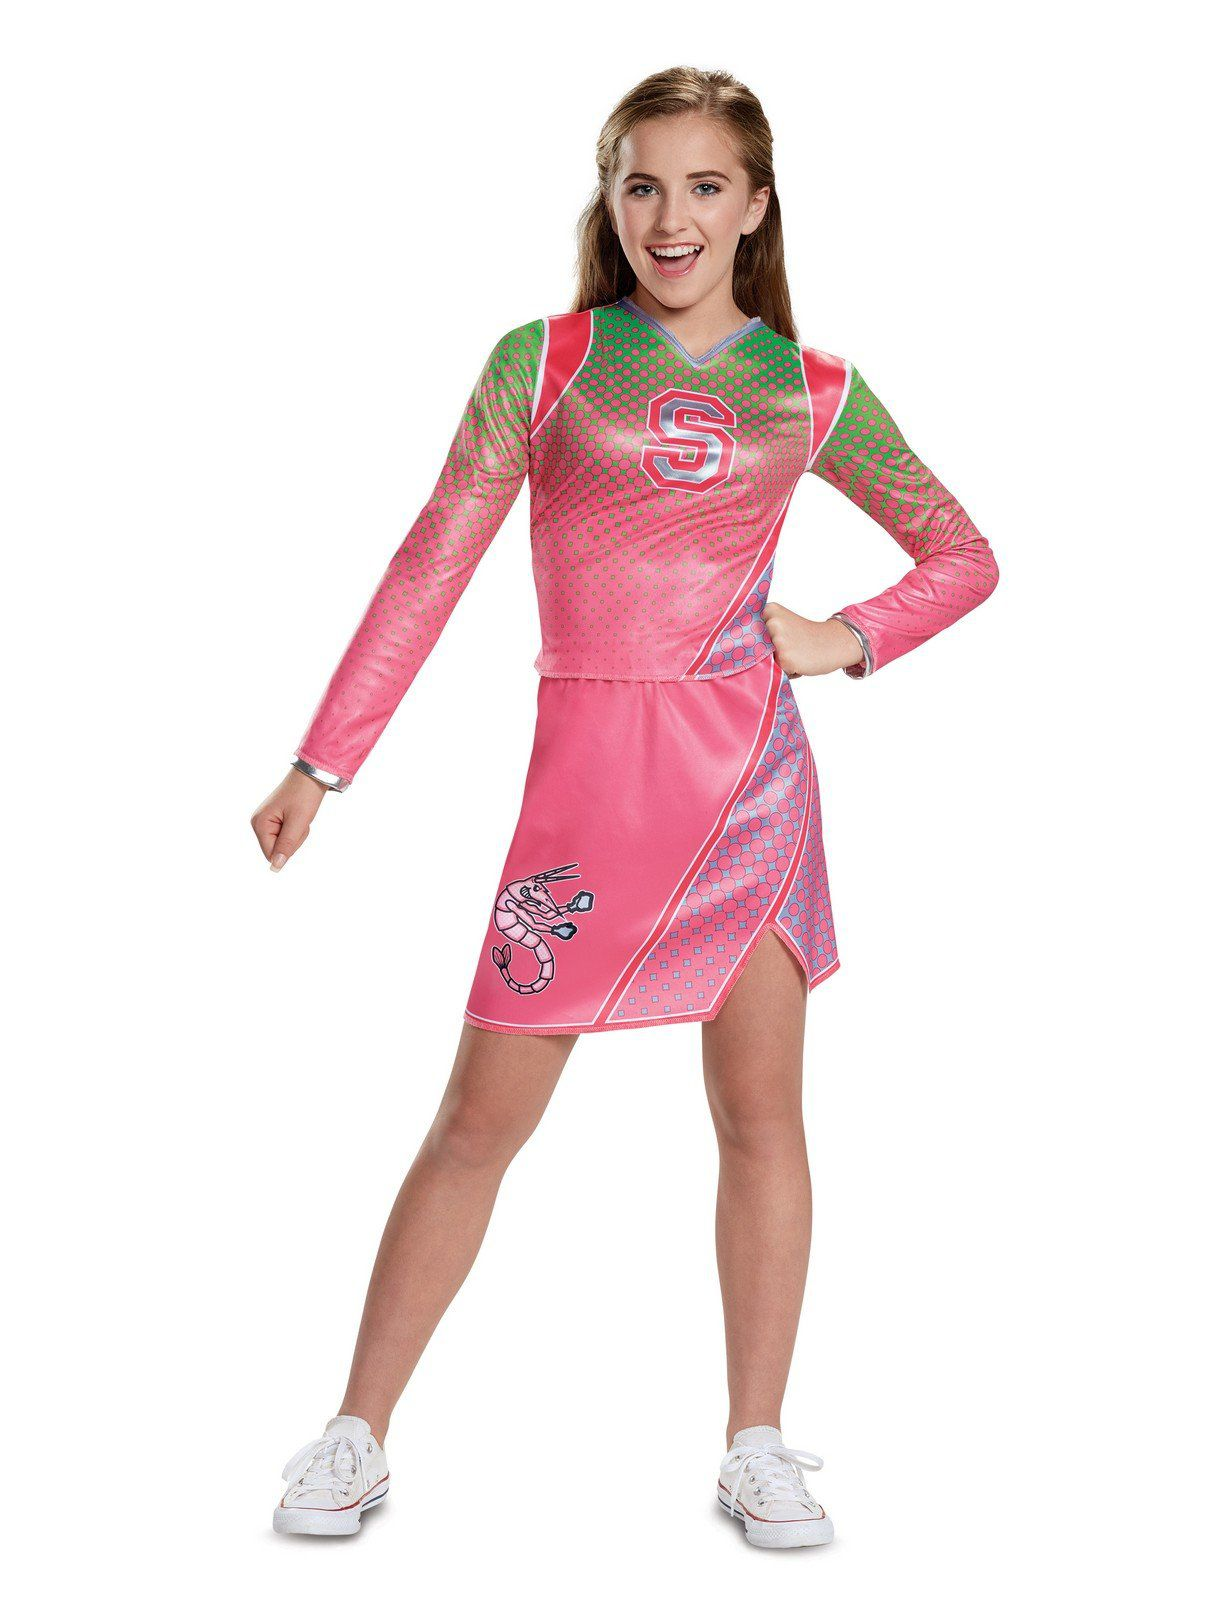 Zombie Halloween Costumes For Toddlers.Z O M B I E S Classic Child Addison Cheerleader Costume